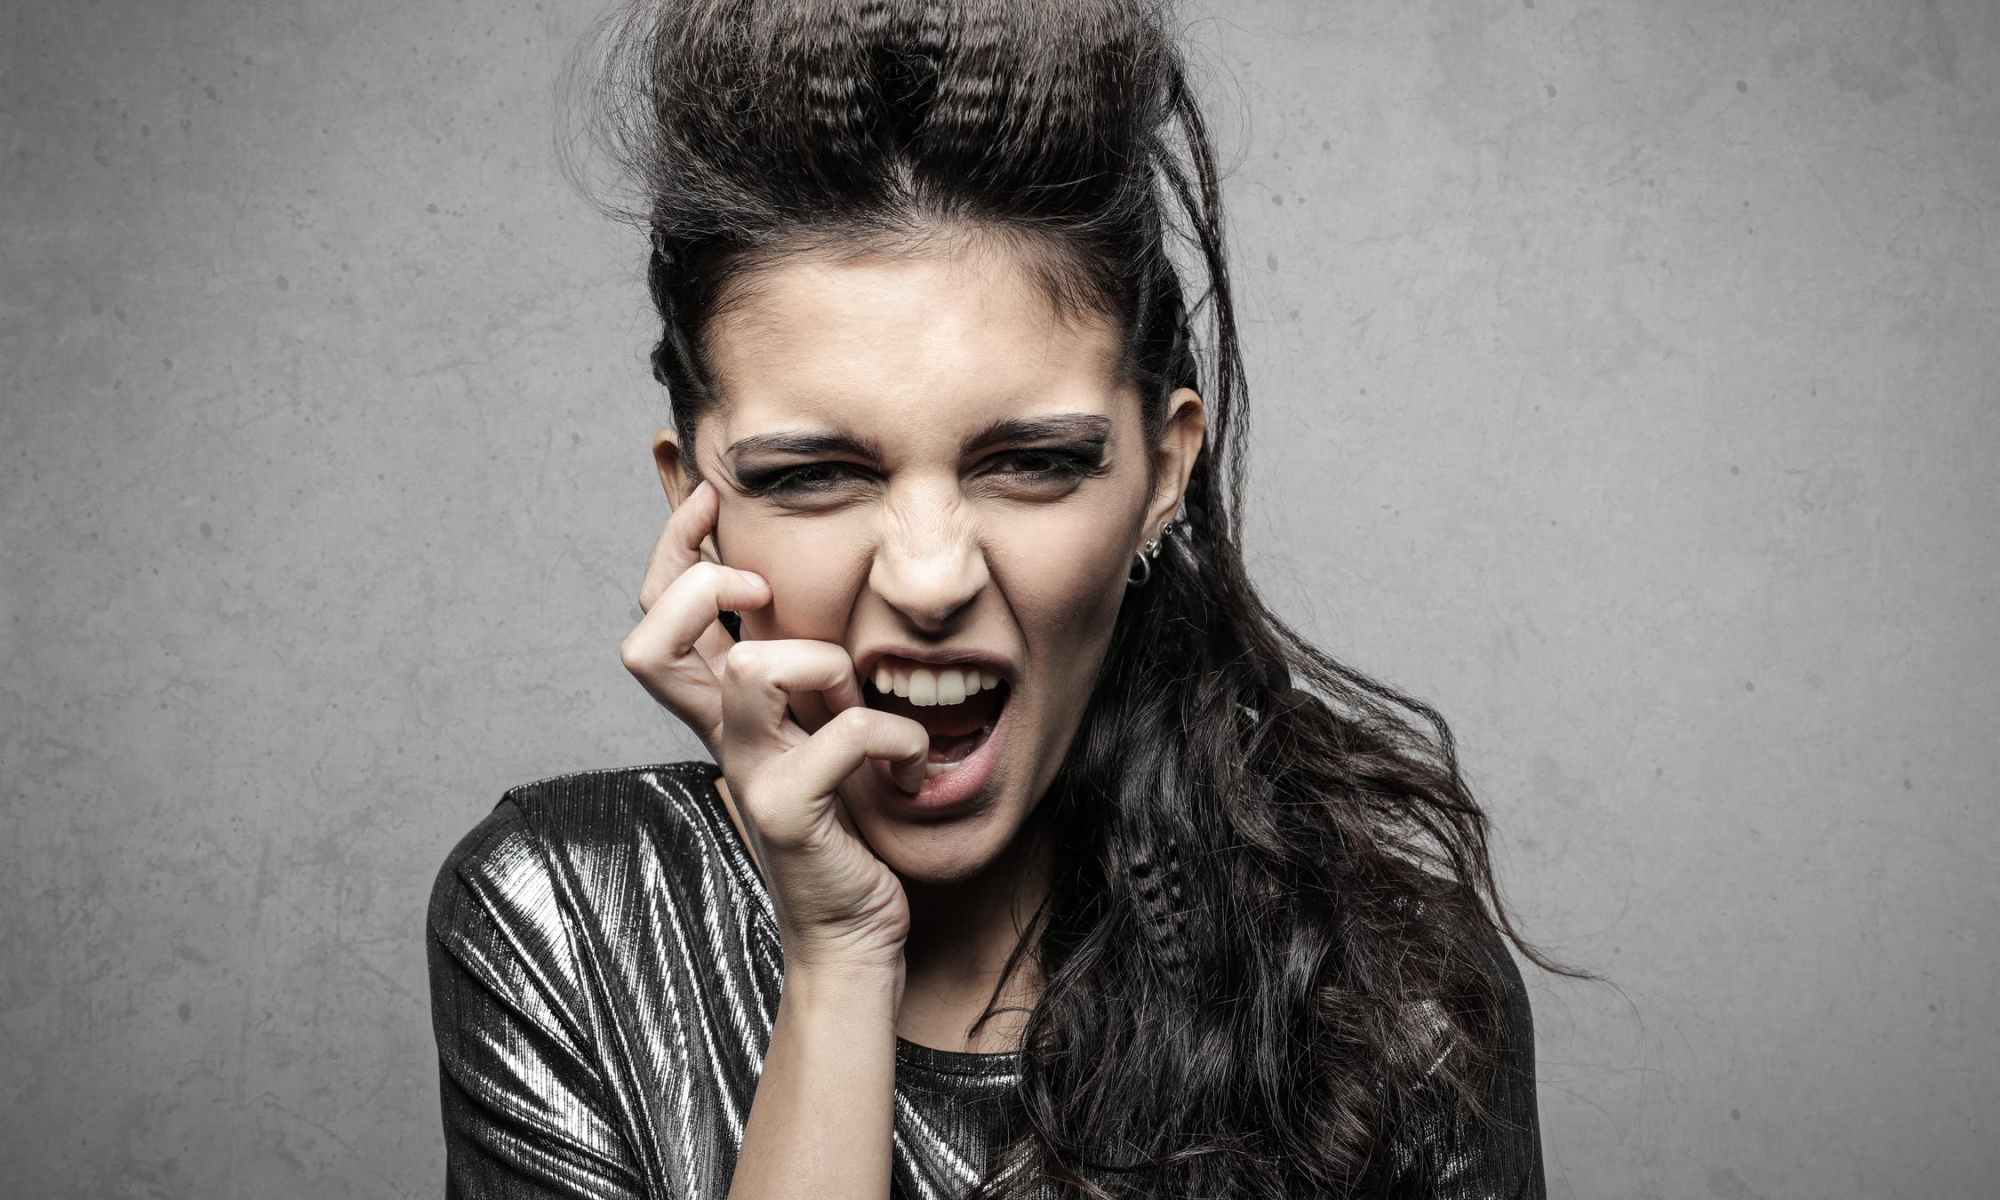 Manic woman with long dark hair with hand on face with open mouth